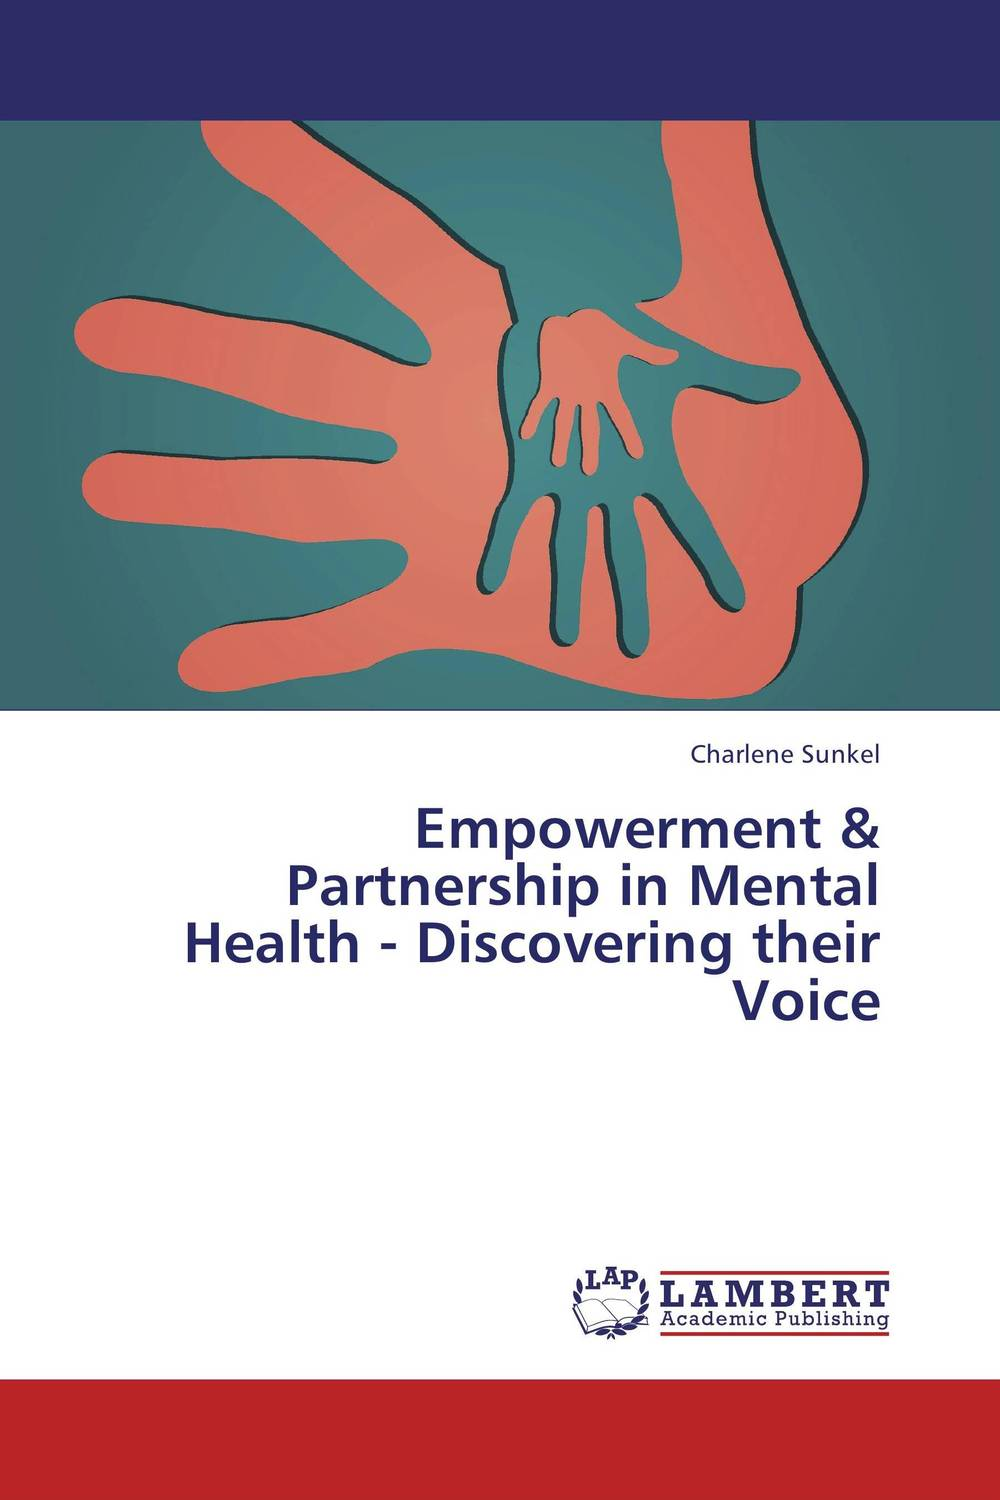 Empowerment & Partnership in Mental Health - Discovering their Voice psychiatric and behavioral disorders in intellectual and developmental disabilities